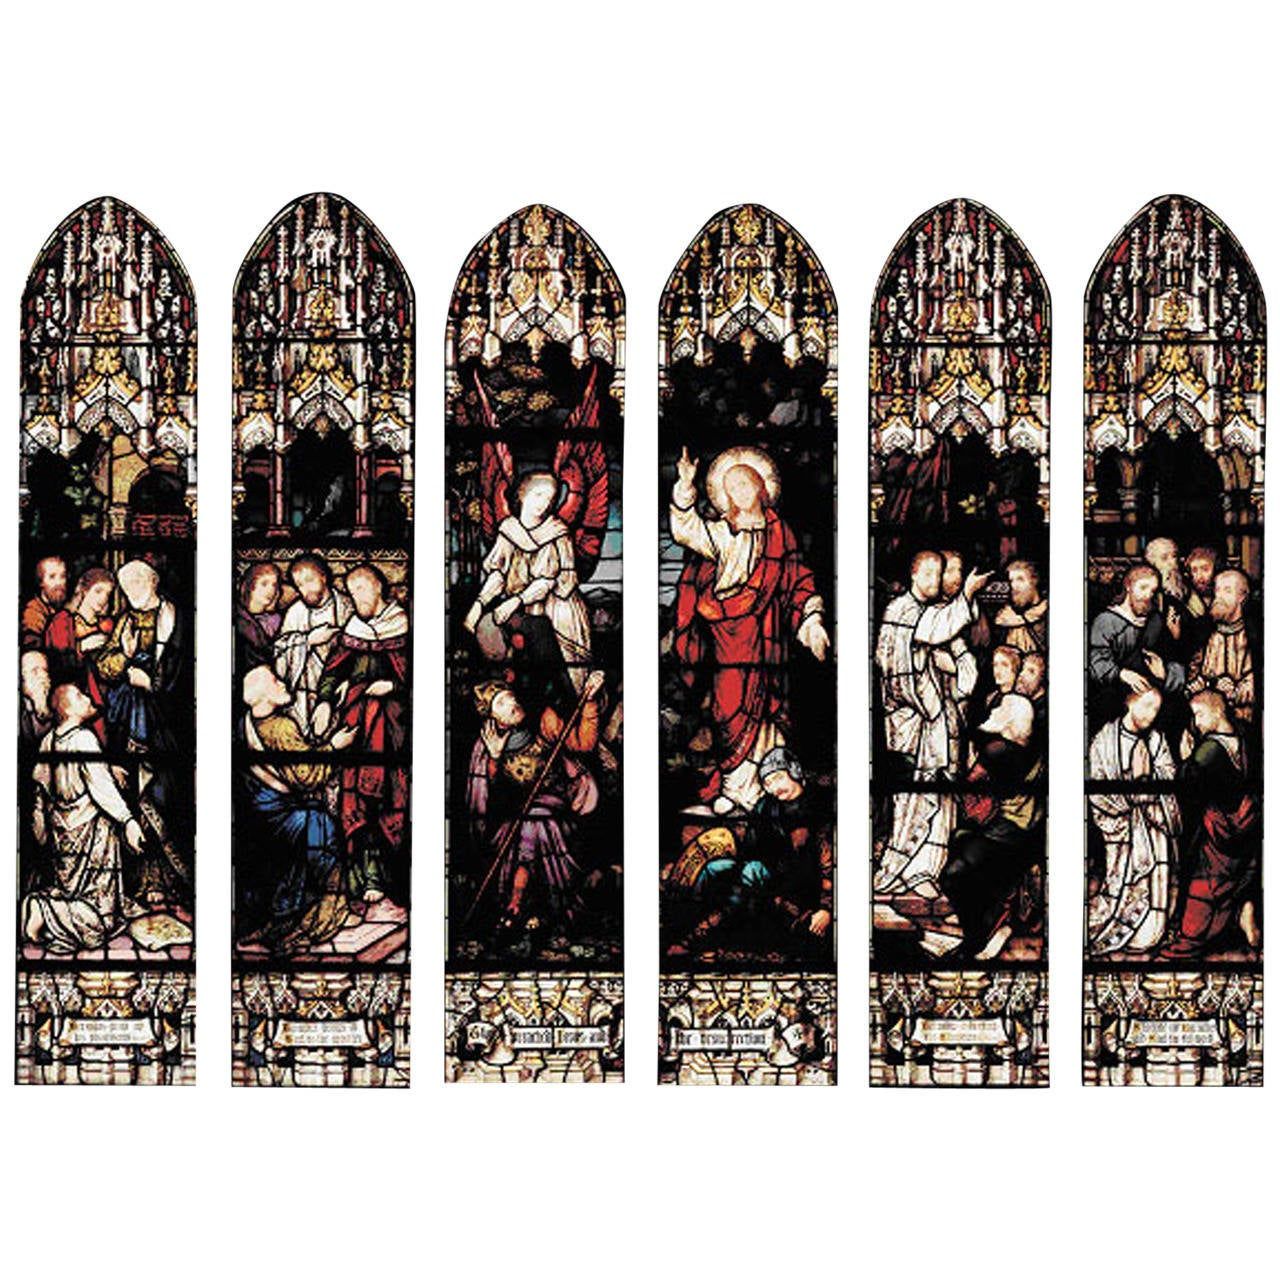 Six-Panel 19th Century Stained Glass Windows by Mayer of Munich